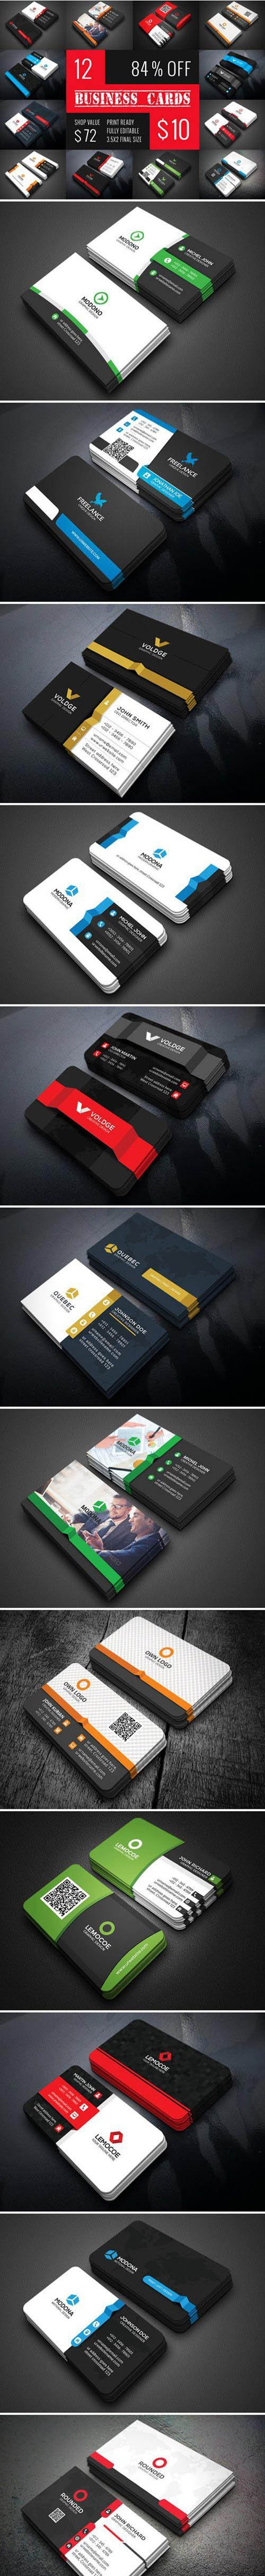 12 Business Card Bundle 2135991